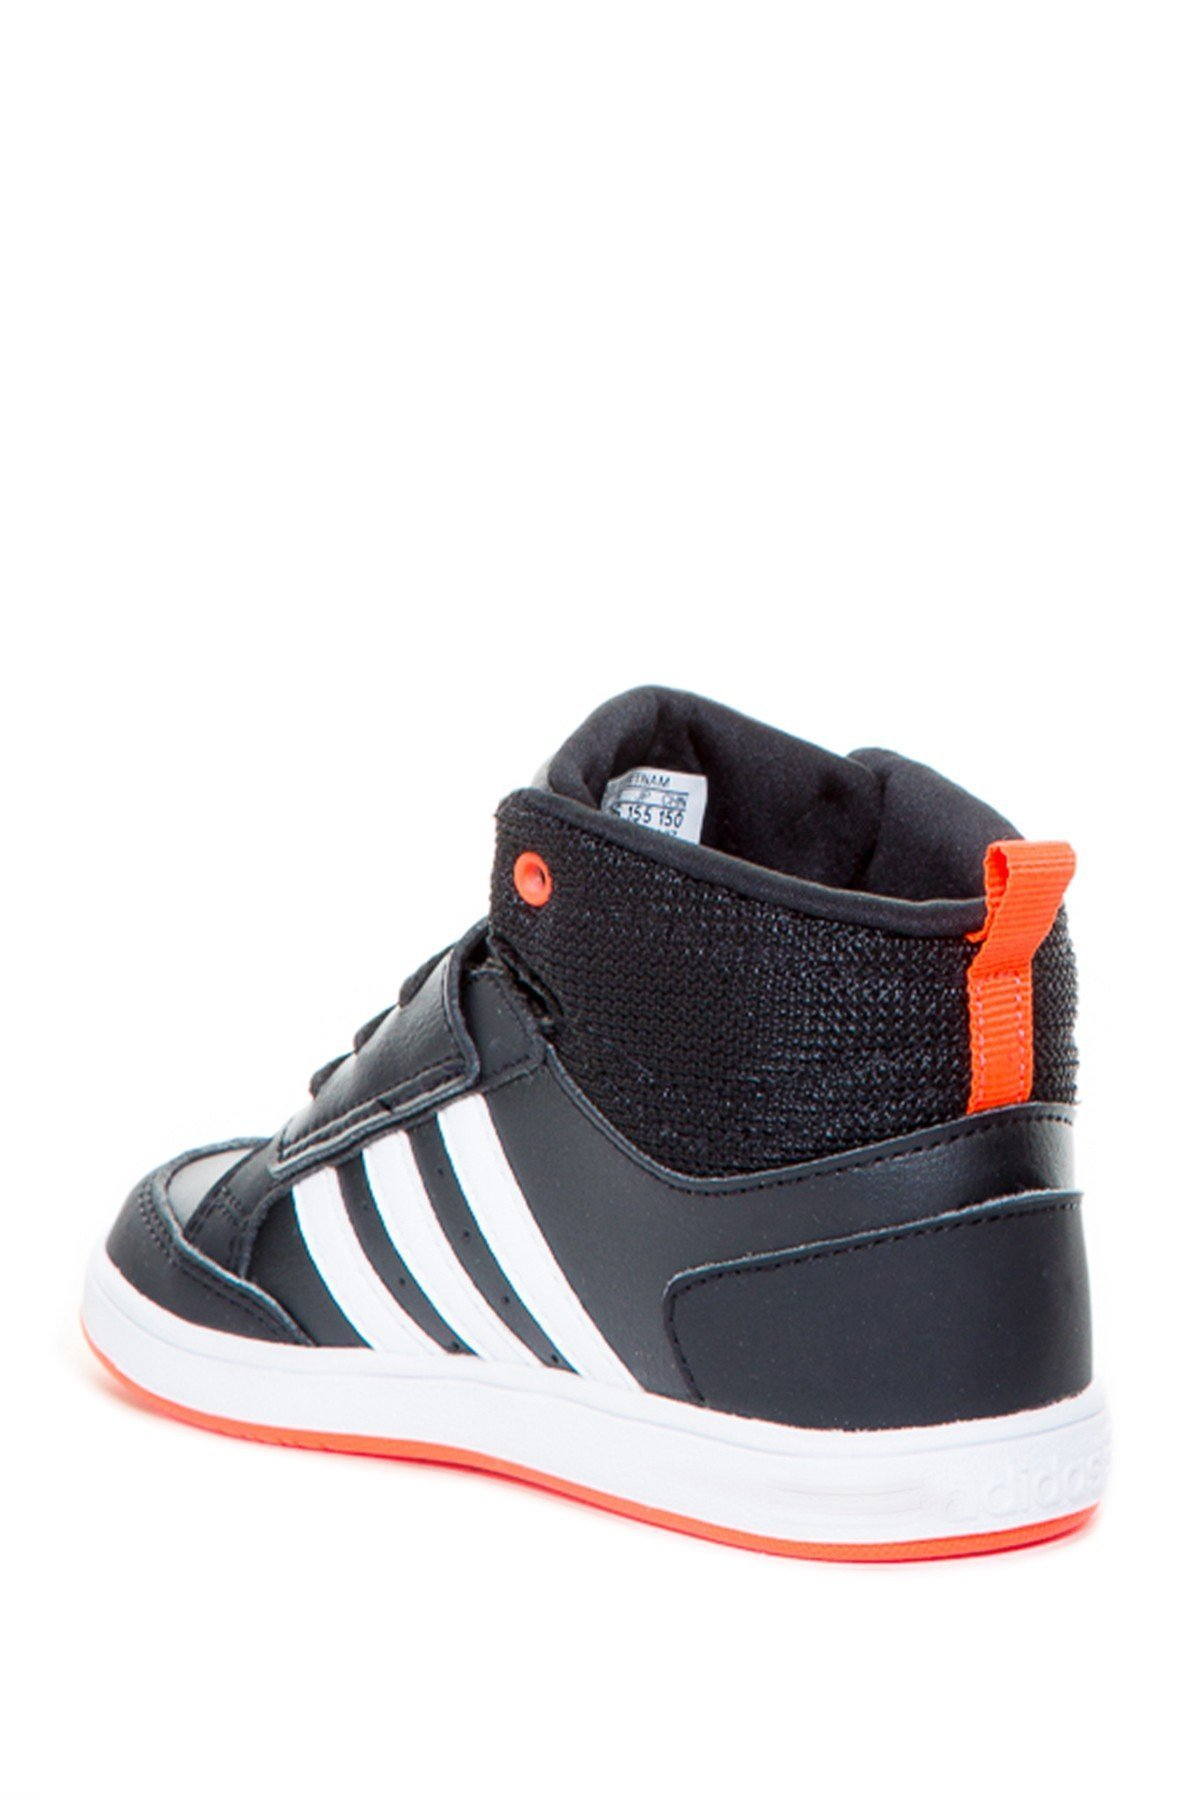 日本未入荷 Hoops CMF Mid Sneaker (Toddler) 関送込!!